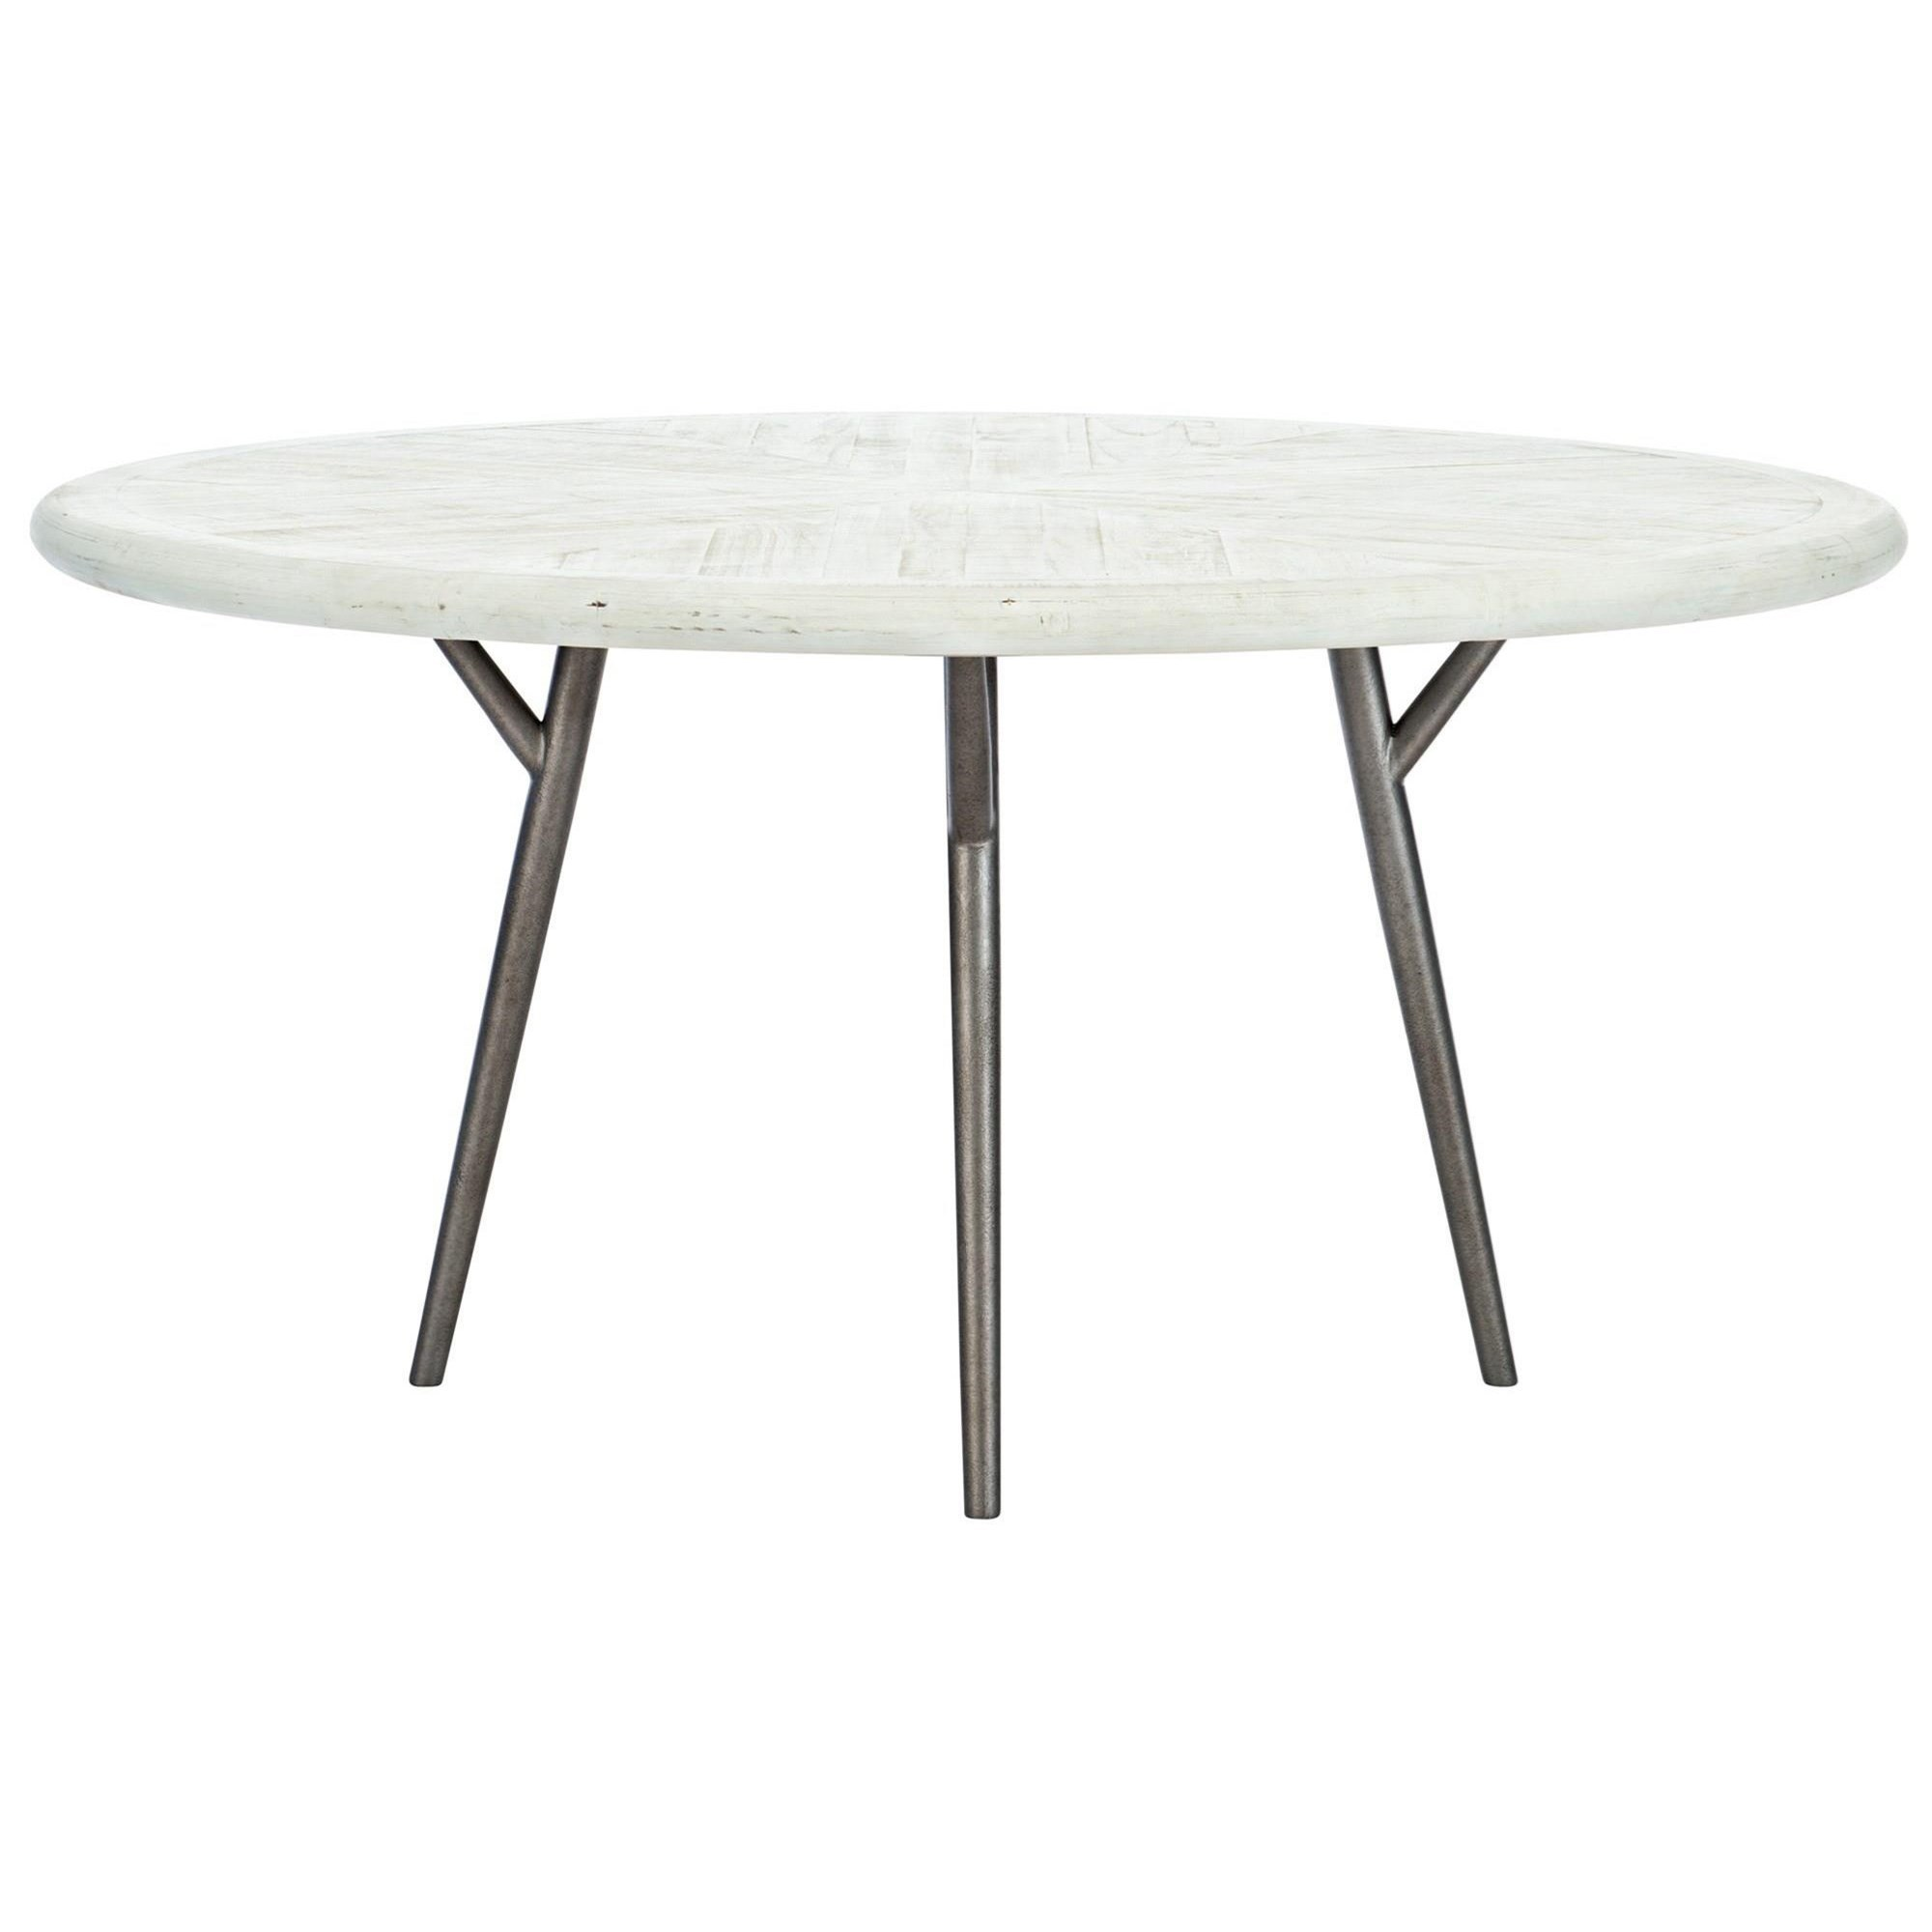 Loft - Presley Round Dining Table